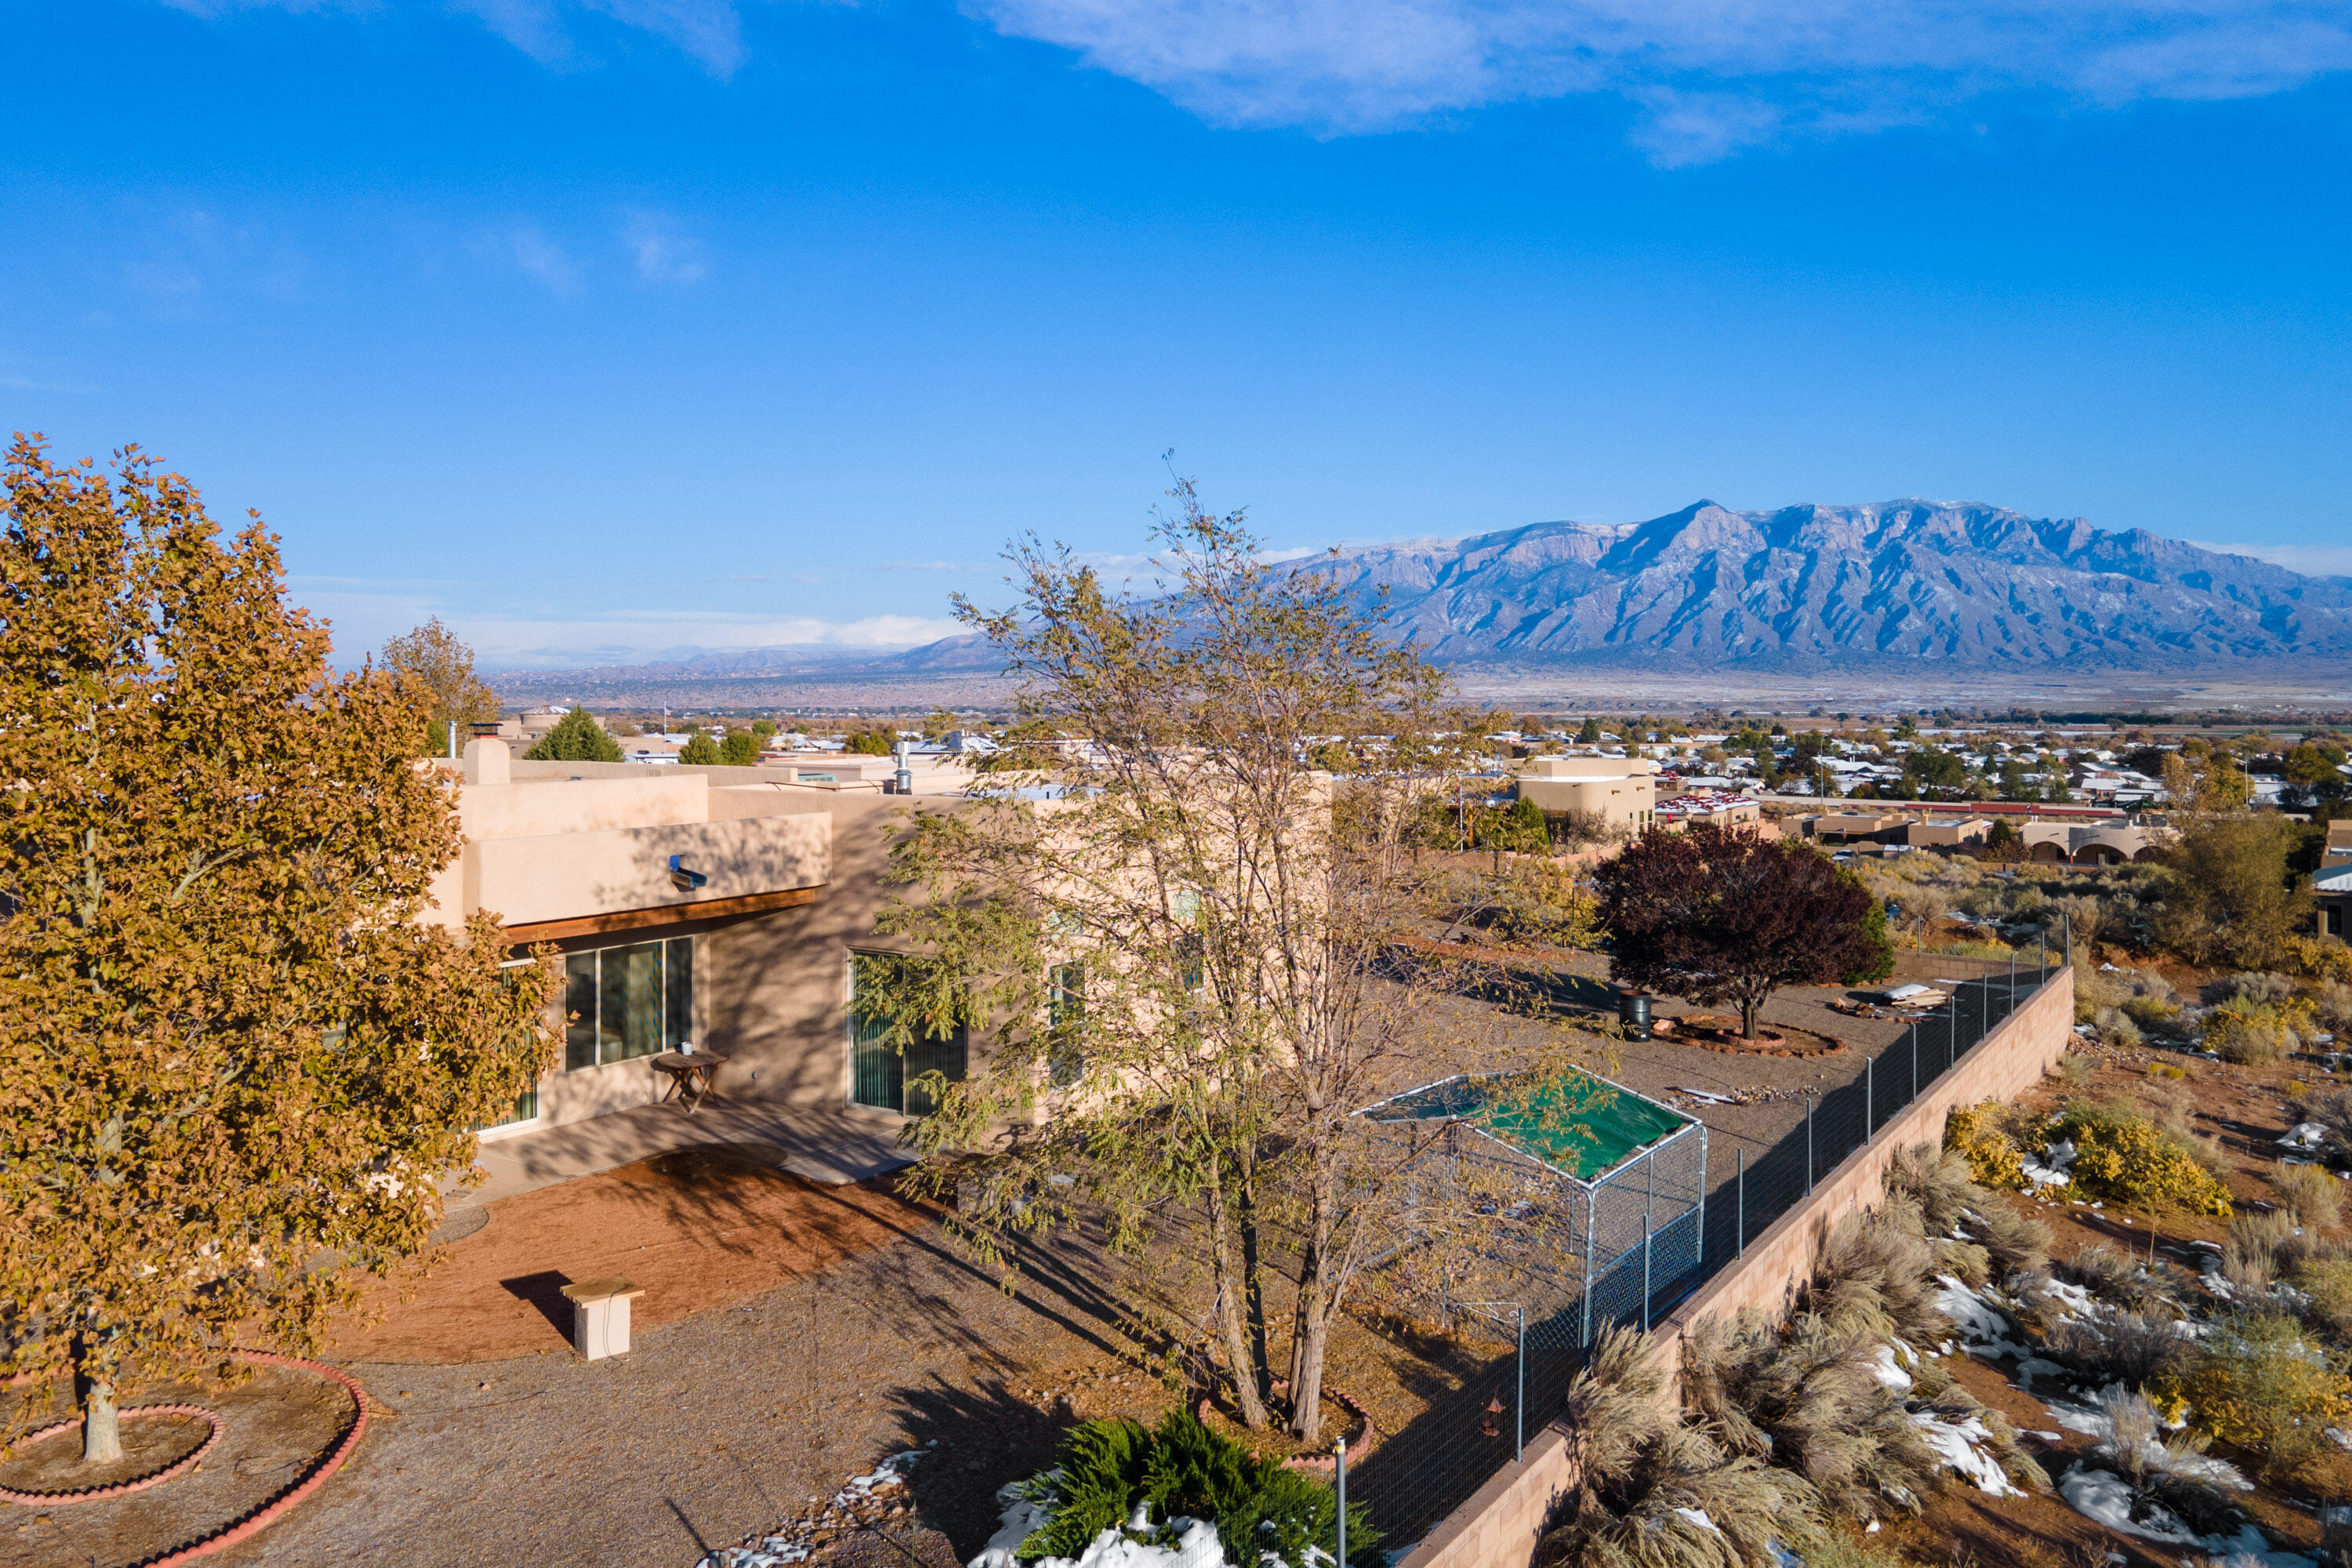 Unobstructed views of the Sandias and Albuquerque!! From the fully finished, low maintenance landscaping to the quality construction and design of this pueblo style home, you'll be impressed with the details this property offers. This home boasts a bright sunny kitchen, plenty of knotty pine cabinets, Talavera style counters with a built in kitchen desk and cooking island. It has two living areas, a kiva fireplace in the family room, that can be wood or gas, a jetted tub in the master suite, soaring ceilings and massive Viga beams. RADIENT HEAT in the floors and REFRIGERATED AIR CONDITIONING. There's a large bonus room for an office or whatever hobby your heart desires. Oh! I forgot to mention the large mostly finished separate building  of about 120 sq ft!  See this one for sure!